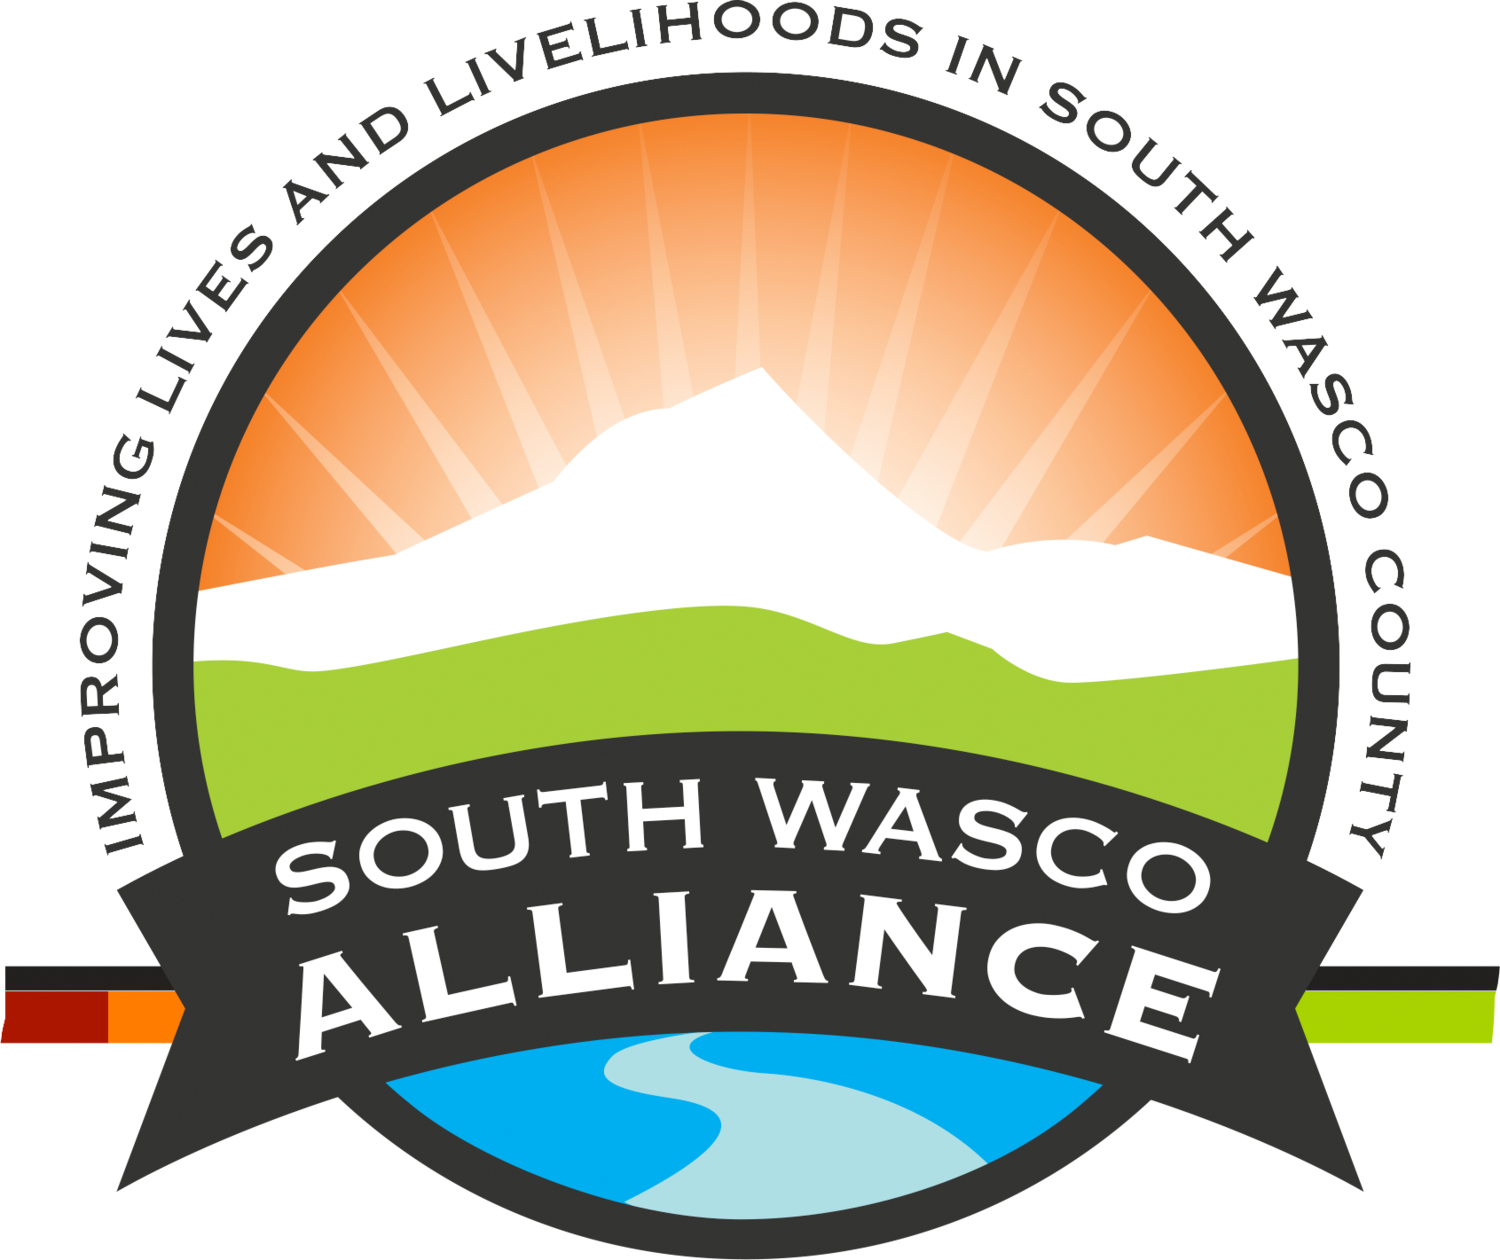 South Wasco Alliance